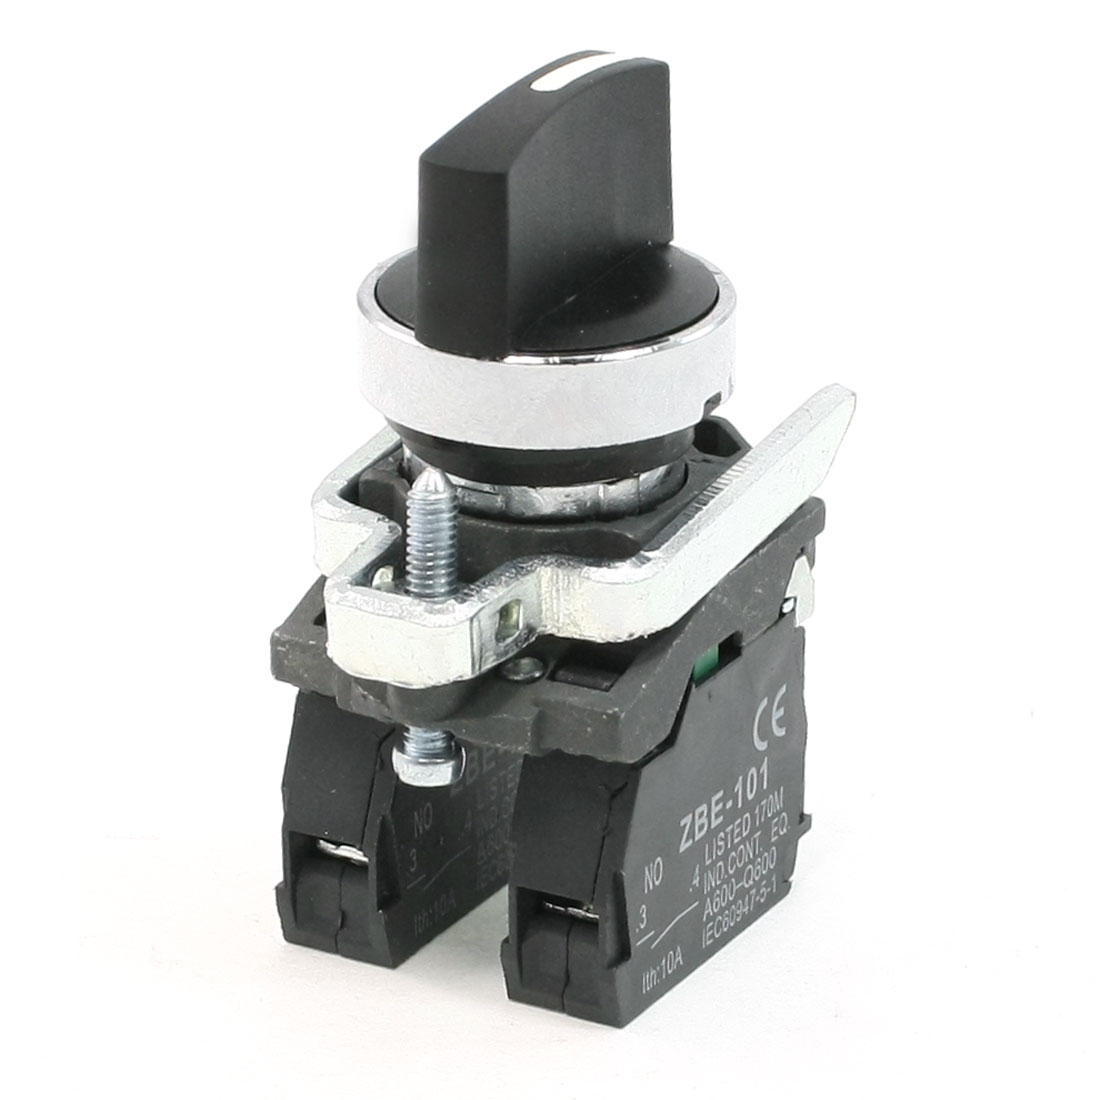 AC 240V 6A 1NO Model SPST Black Selector Self-Locking Rotary Switch